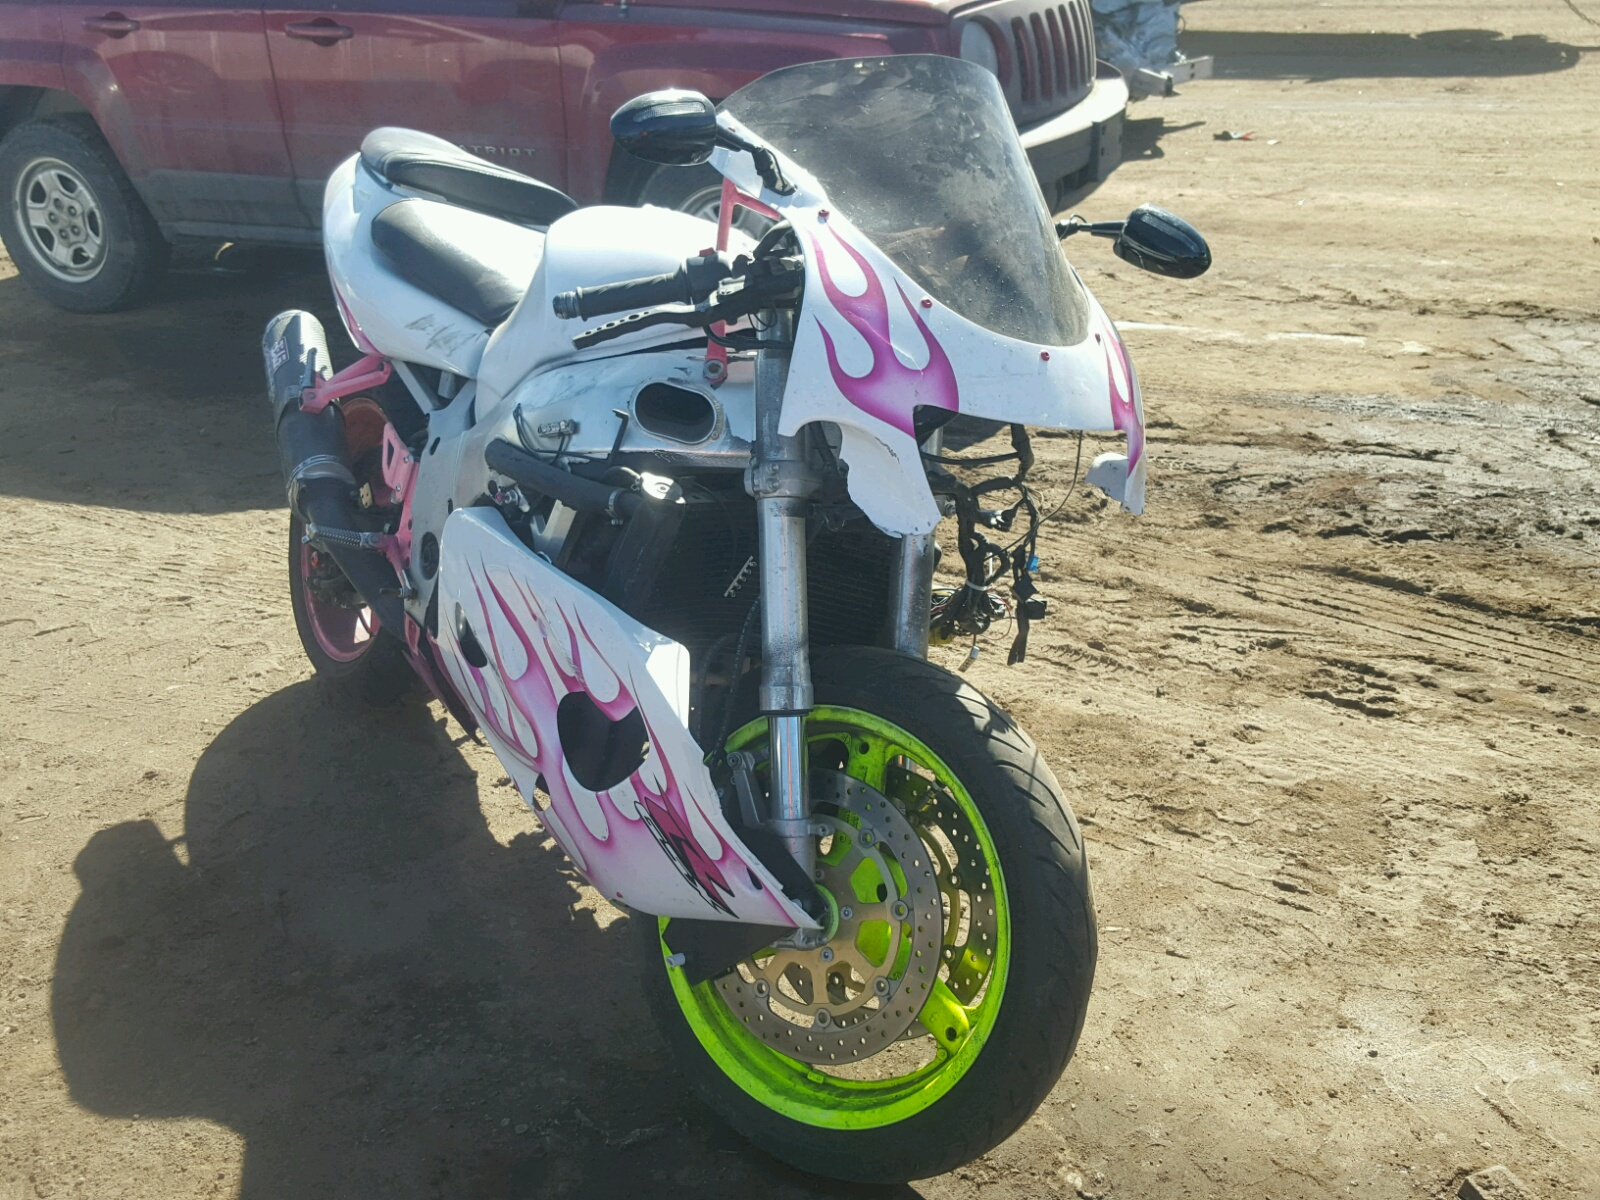 Salvaged Motorcycles for Auction - AutoBidMaster